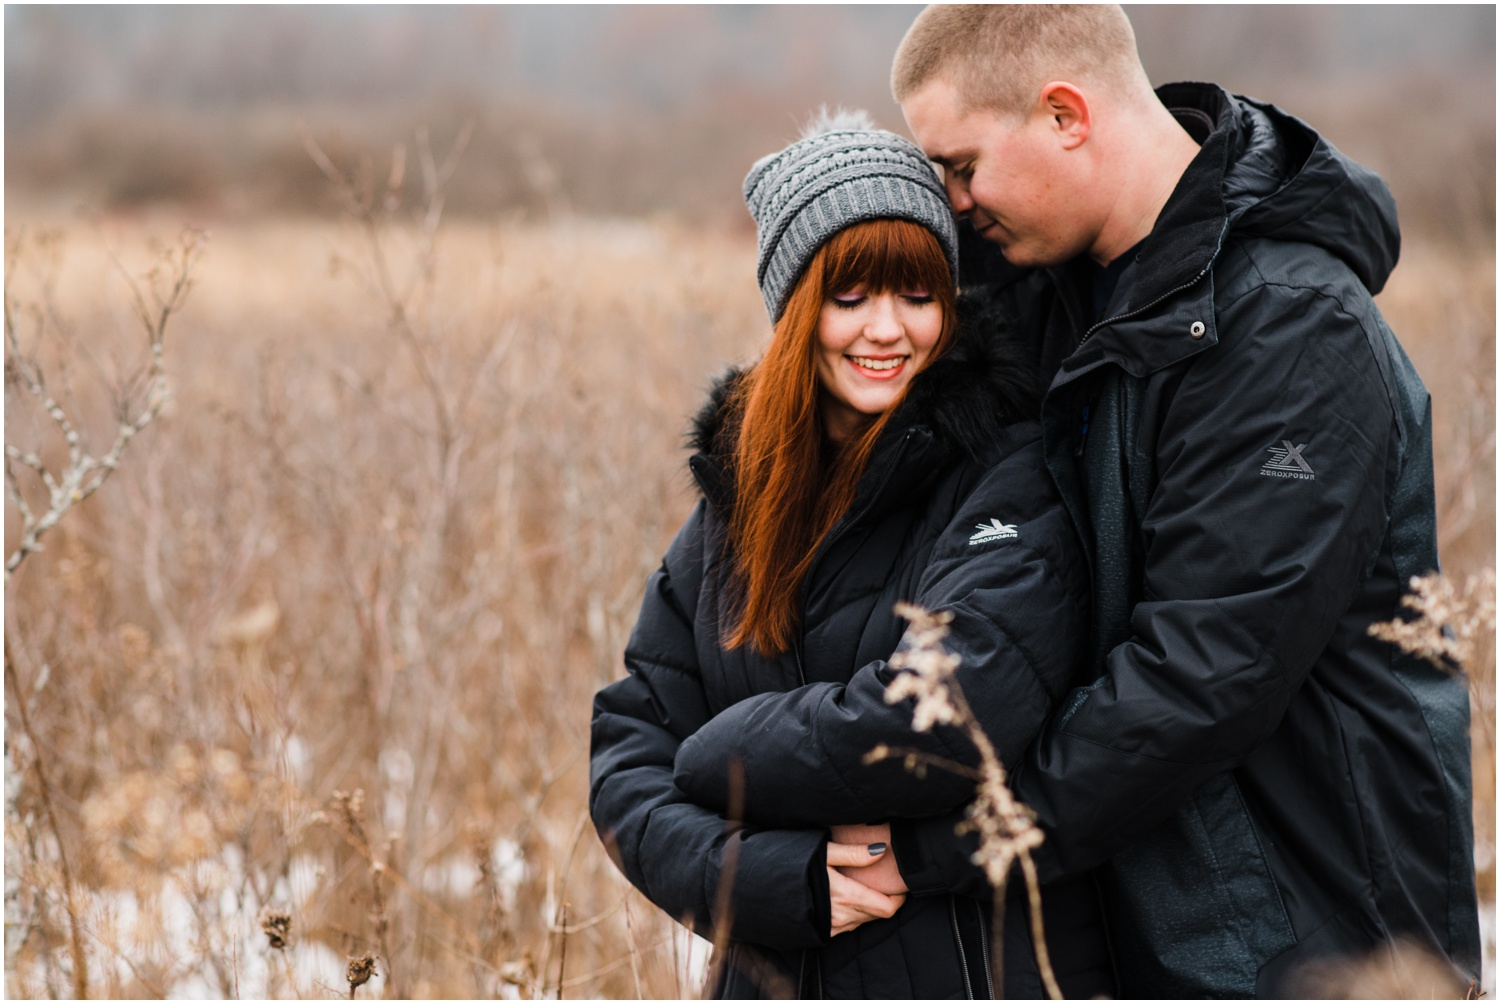 Devils-Lake-Baraboo-Wisconsin-Engagement-Photographer-Lindsey-And-Cody-Engaged-41.jpg